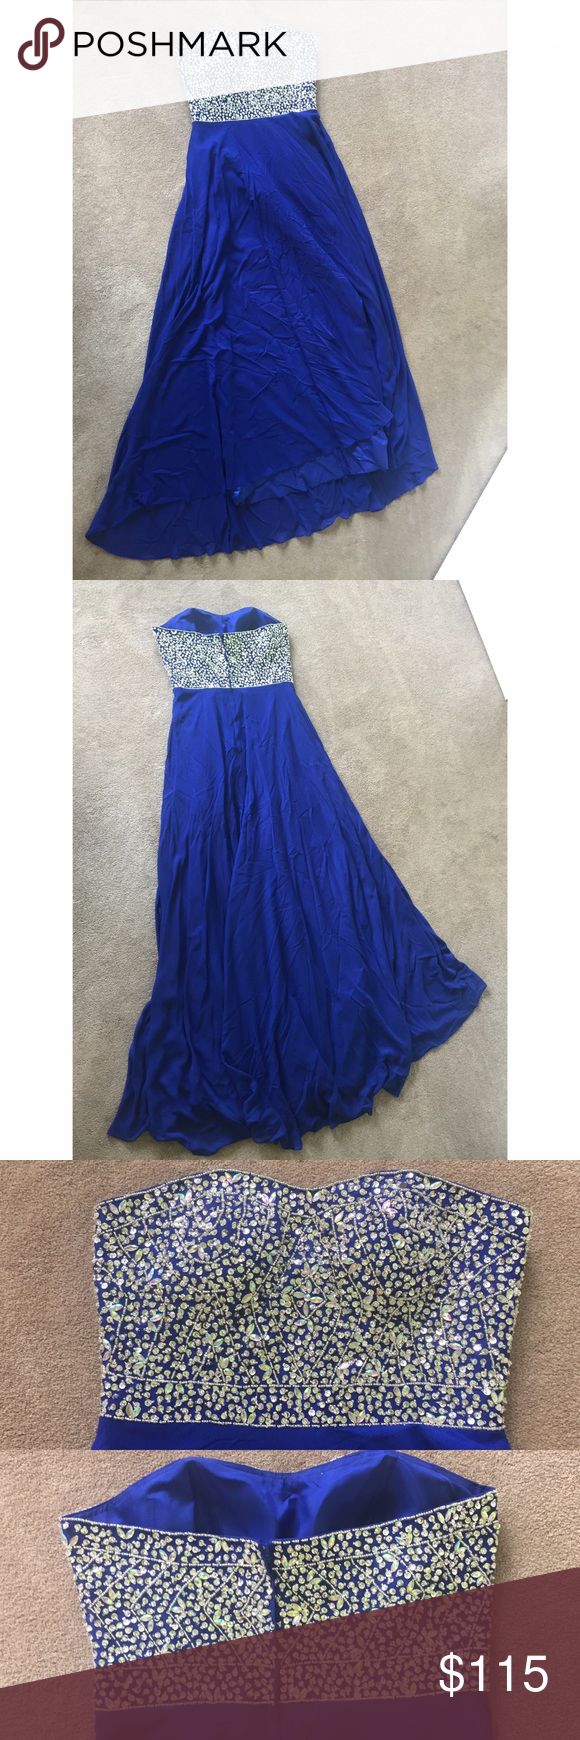 NWOT Royal Blue A-Line prom / winter ball dress Selling this beautiful royal blue dress, perfect for prom or any kind of ball. I bought it from a prom website in 2015 for $180. Prom was cancelled and I couldn't return it so it's basically brand new, just slightly wrinkled because it was laying in a storage chest but could easily been ironed. Doesn't fit me anymore so I was only able to take a picture holding up the dress. Dress size says 16W but definitely runs small, would fit someone with…